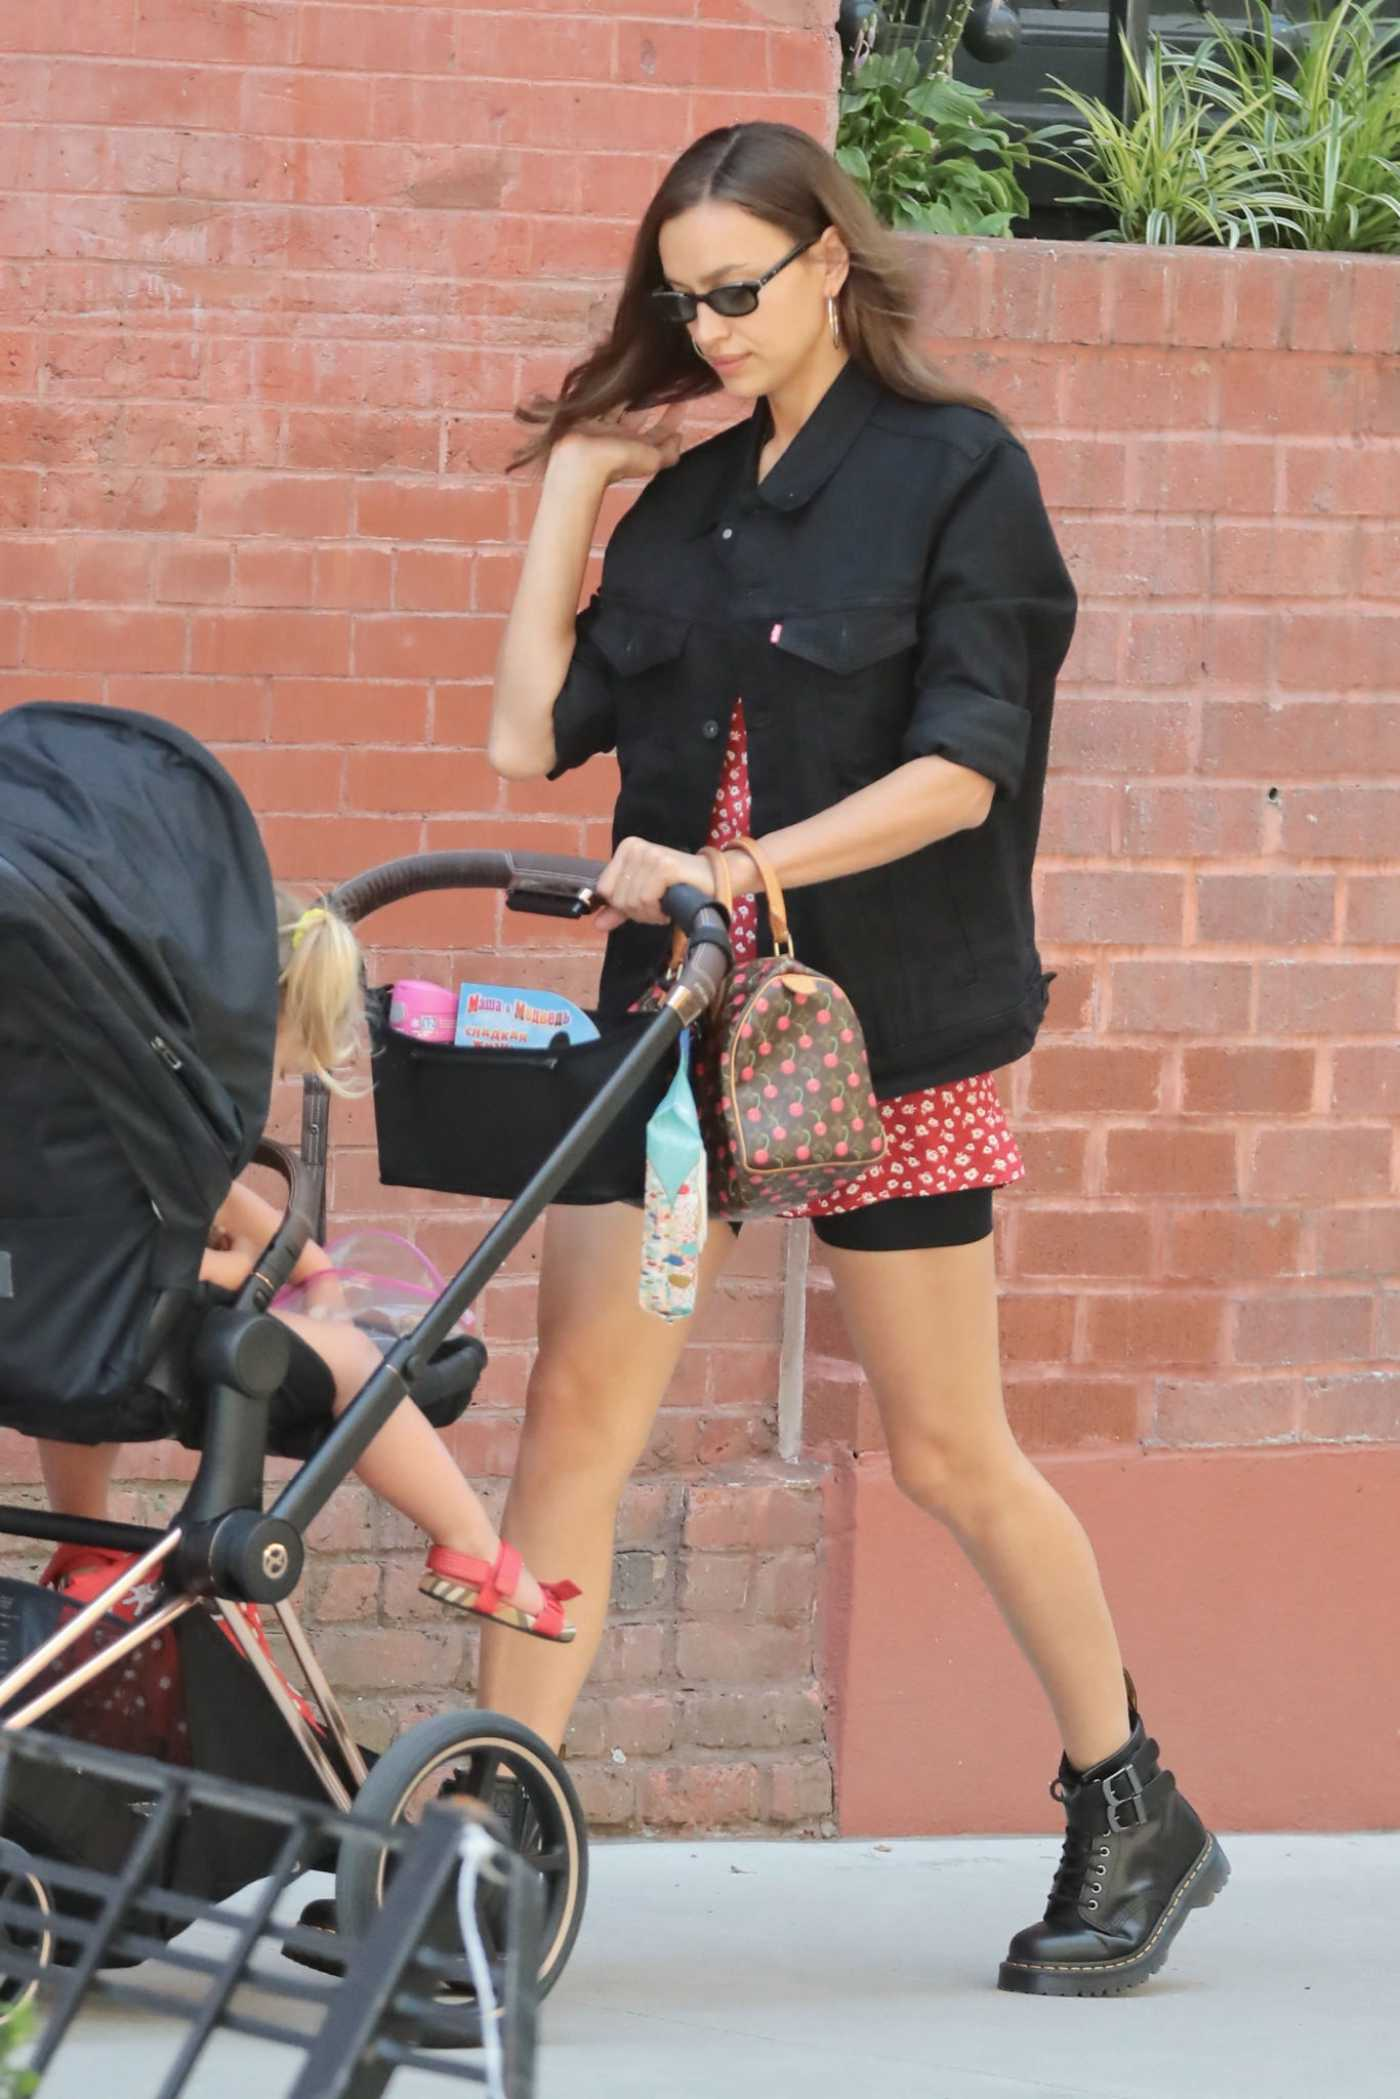 Irina Shayk in a Black Denim Jacket Was Seen Out with Her Daughter in New York City 07/15/2019